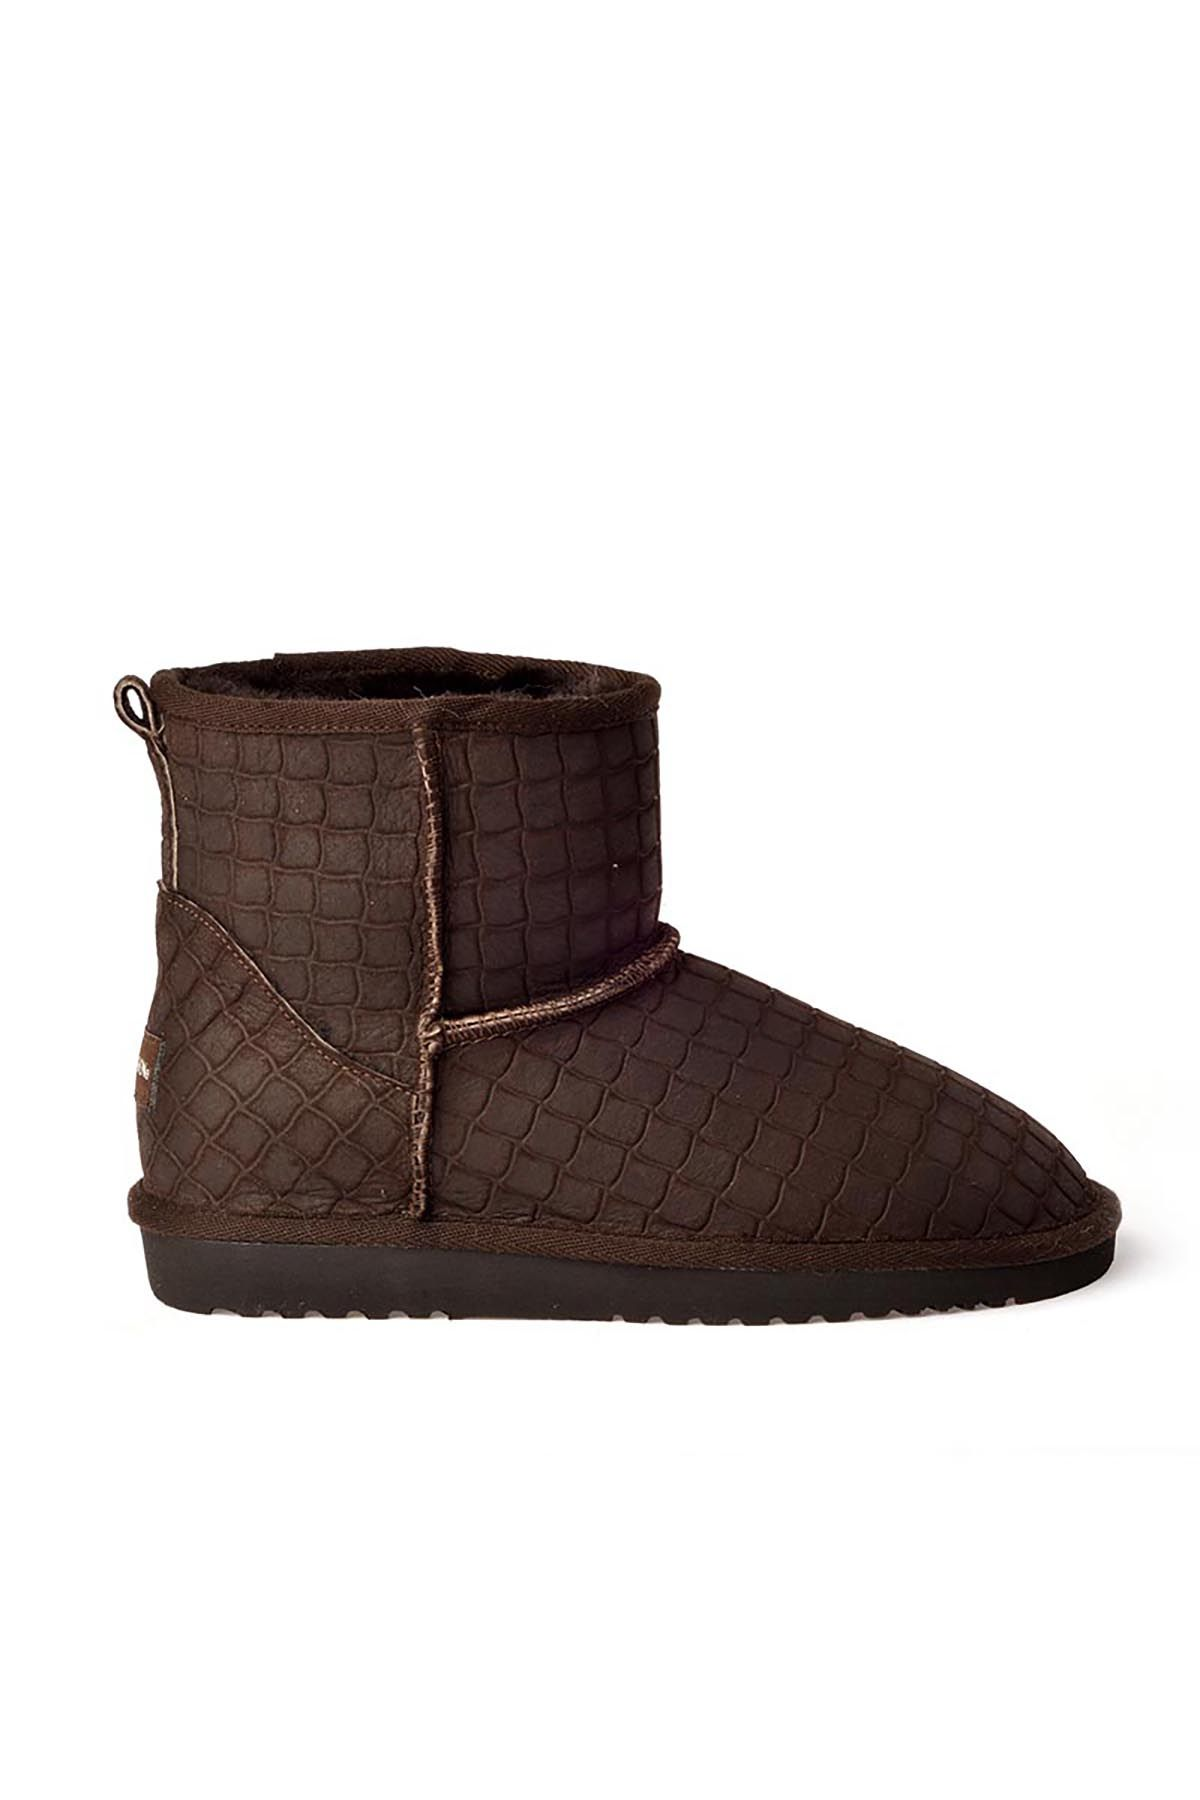 Cool Moon Women Boots From Genuine Fur With Crocodile Pattern 990165 Brown